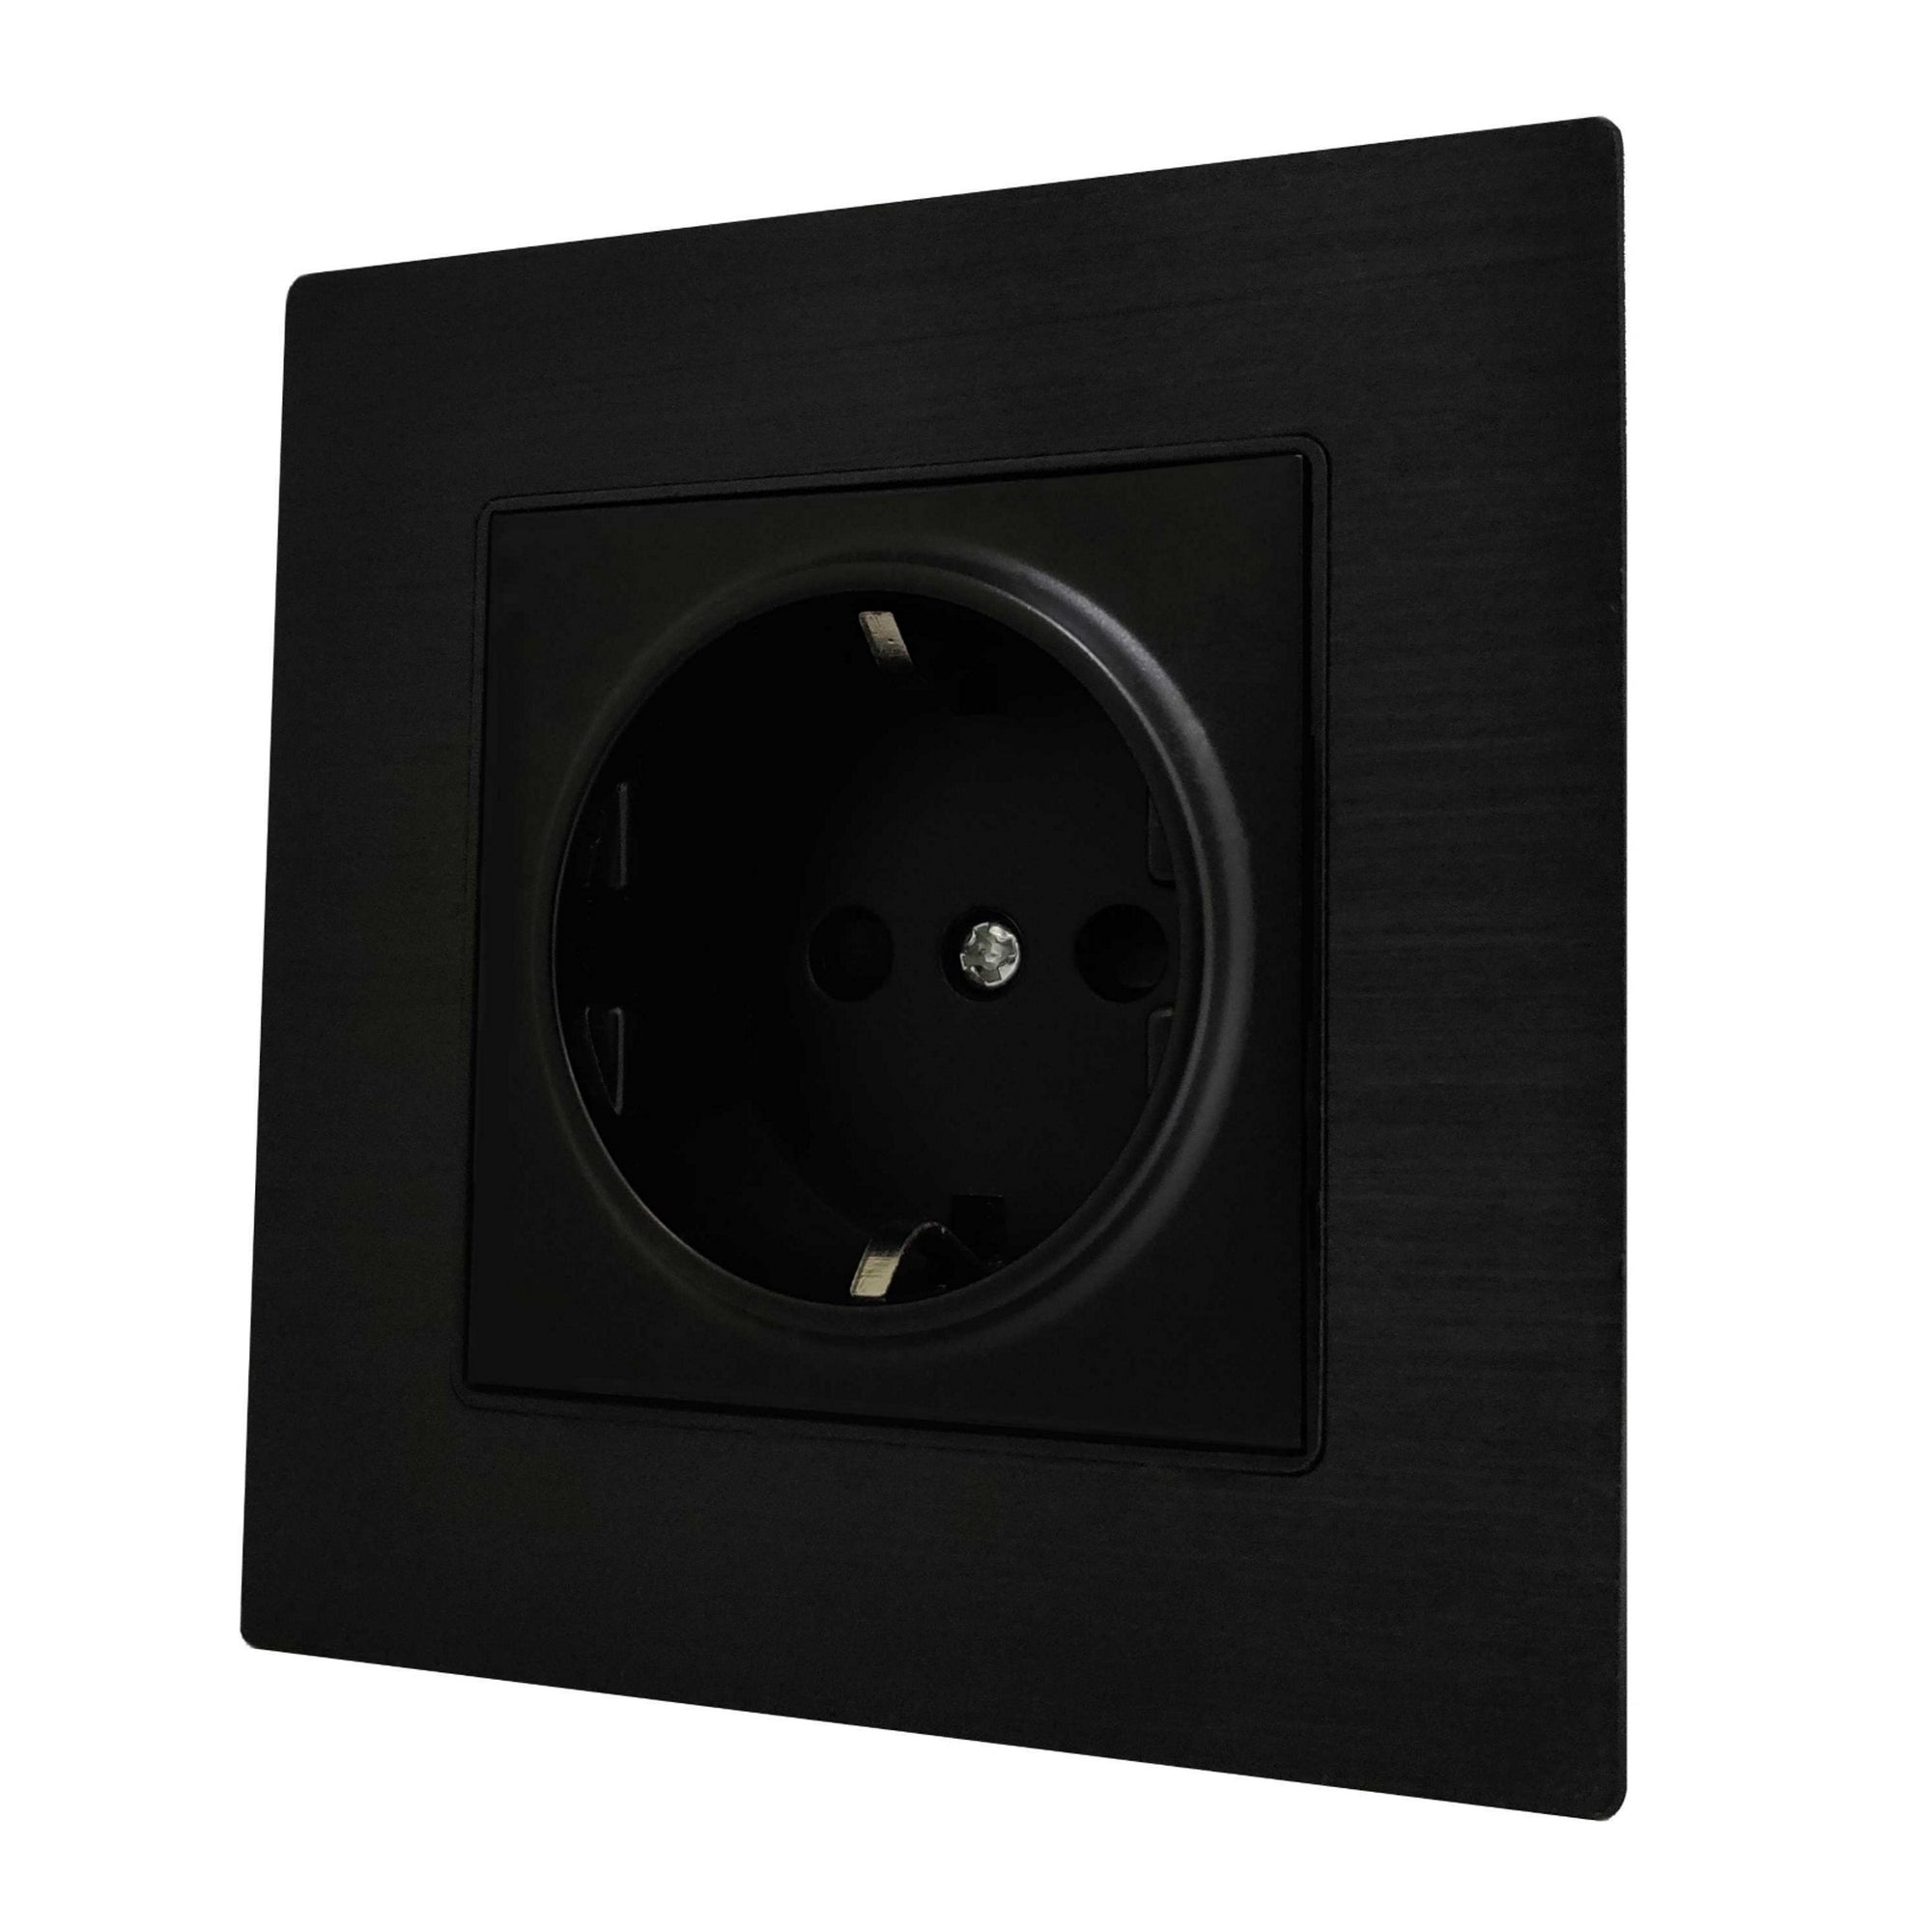 Single Schuko EU 16A 2-Pin AC Wall Power Socket in Black Brushed Alum Frame & Black Centre